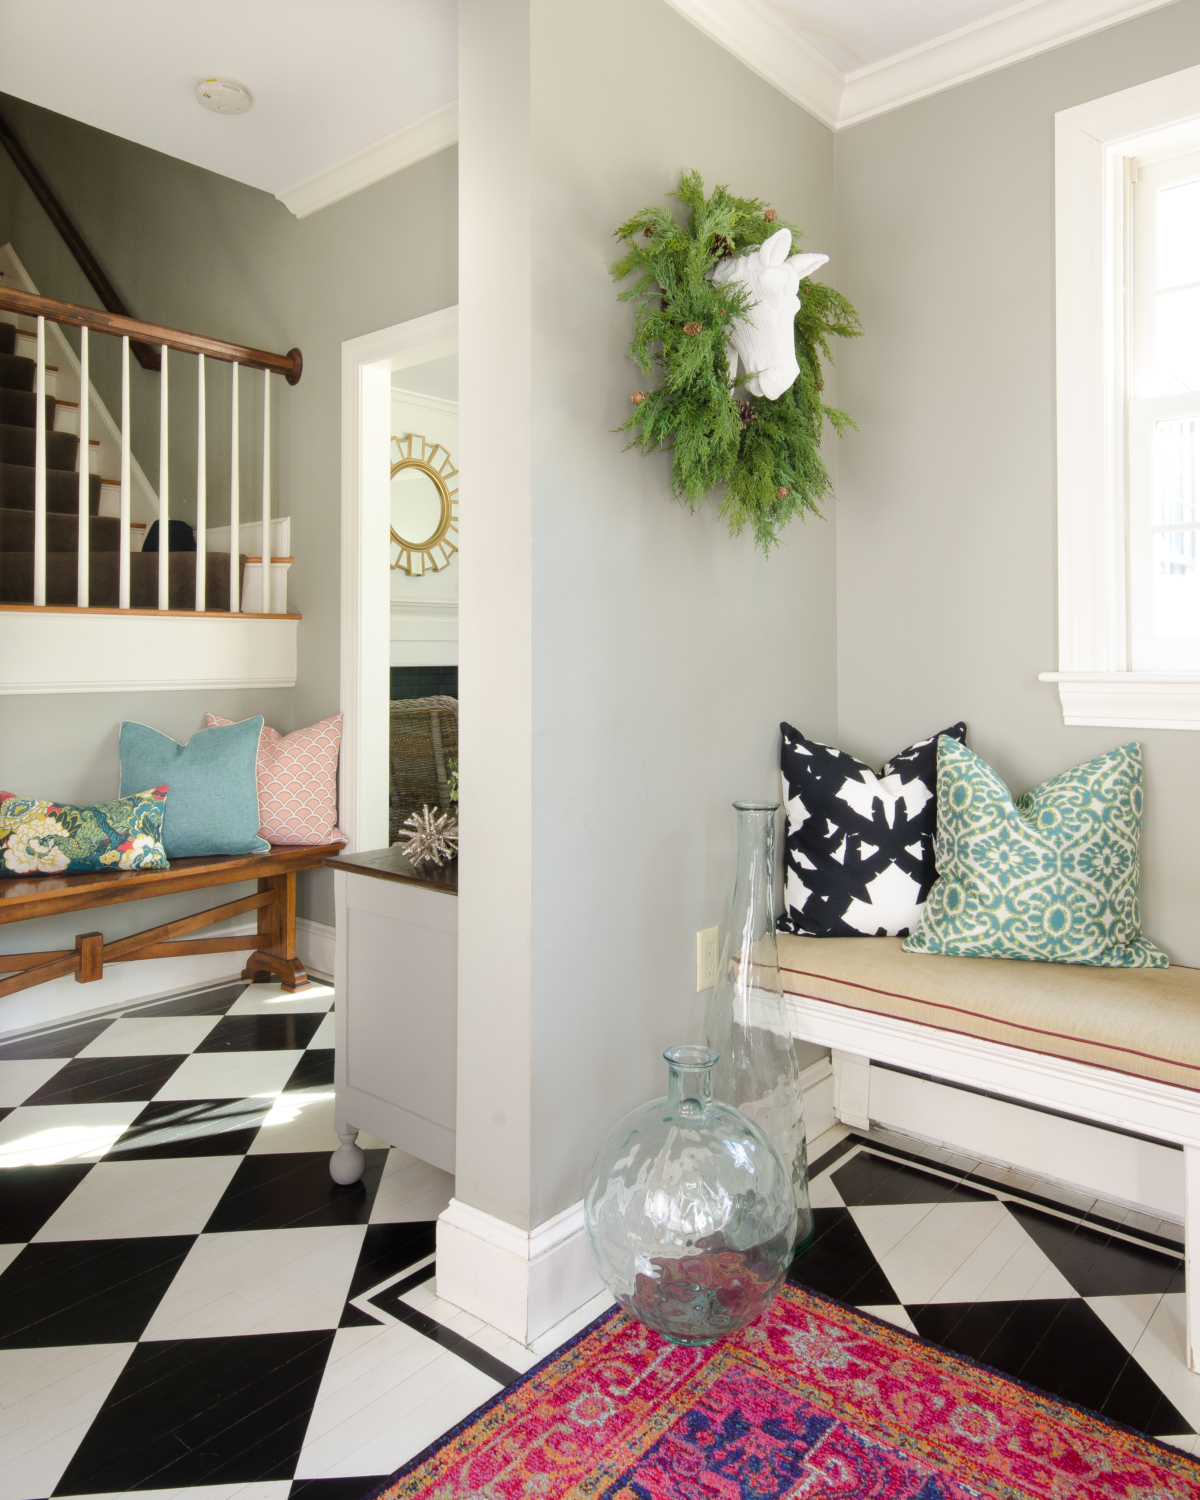 A charming, fresh entryway design featuring black and white, deep pink, and teal blue accents.